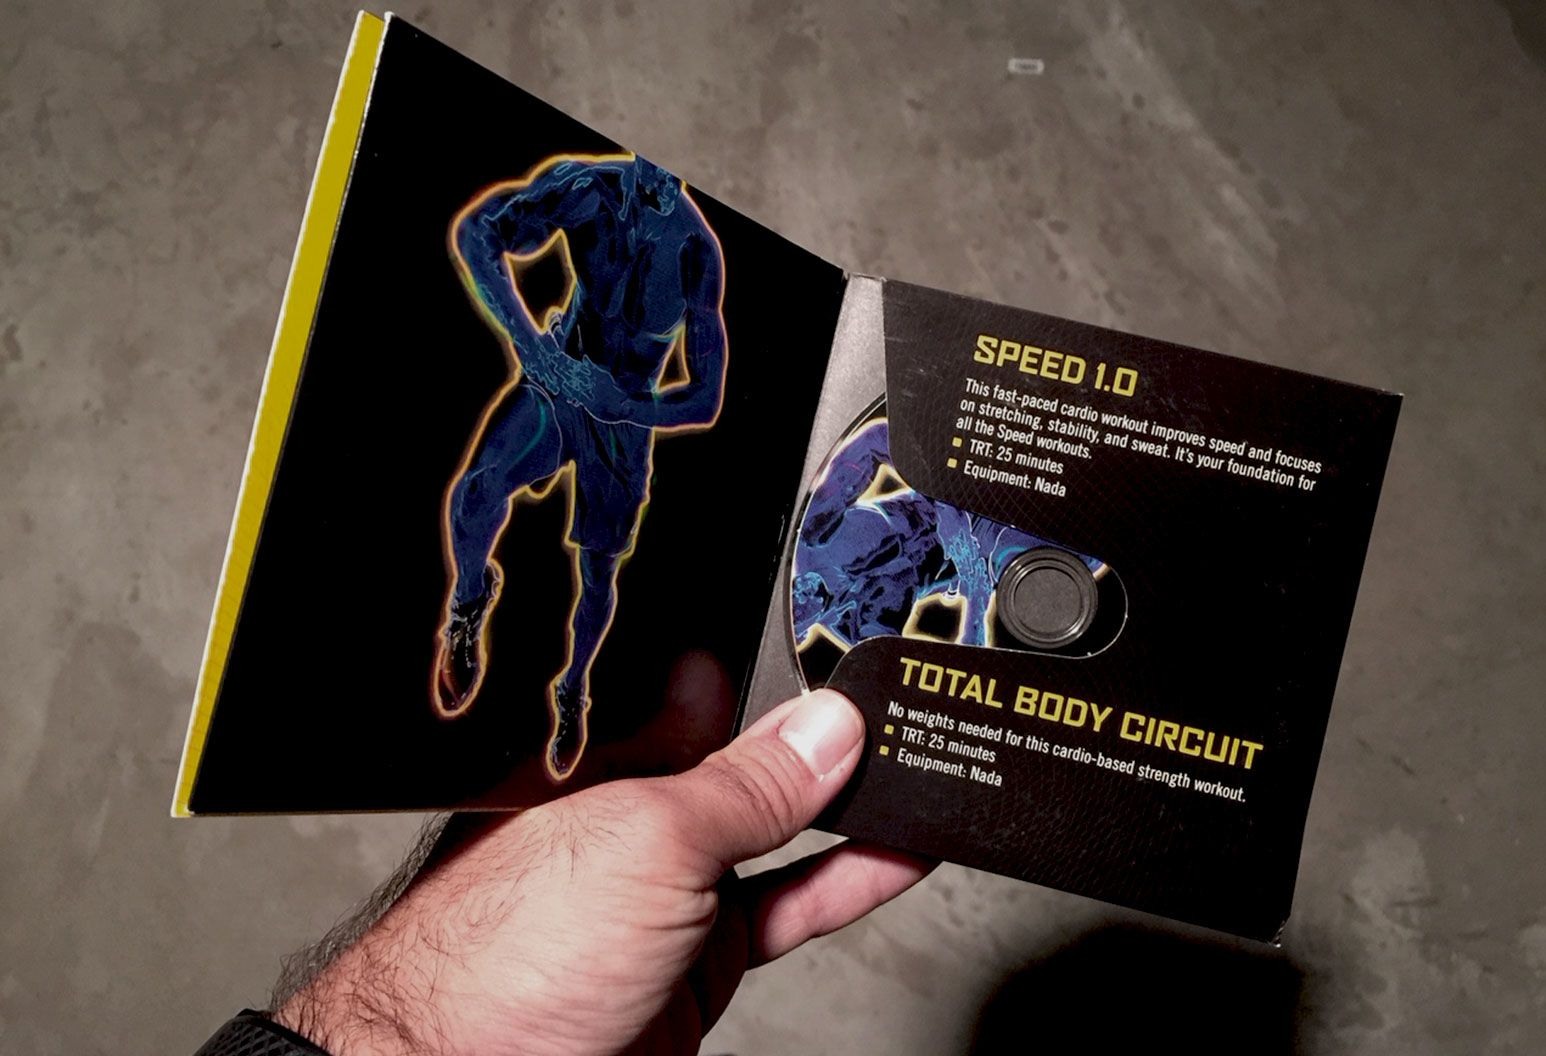 A hand holds a workout dvd in a black case. The case has a graphic of a body in motion in a body thermal view. The other side of the case displays details of the workout.